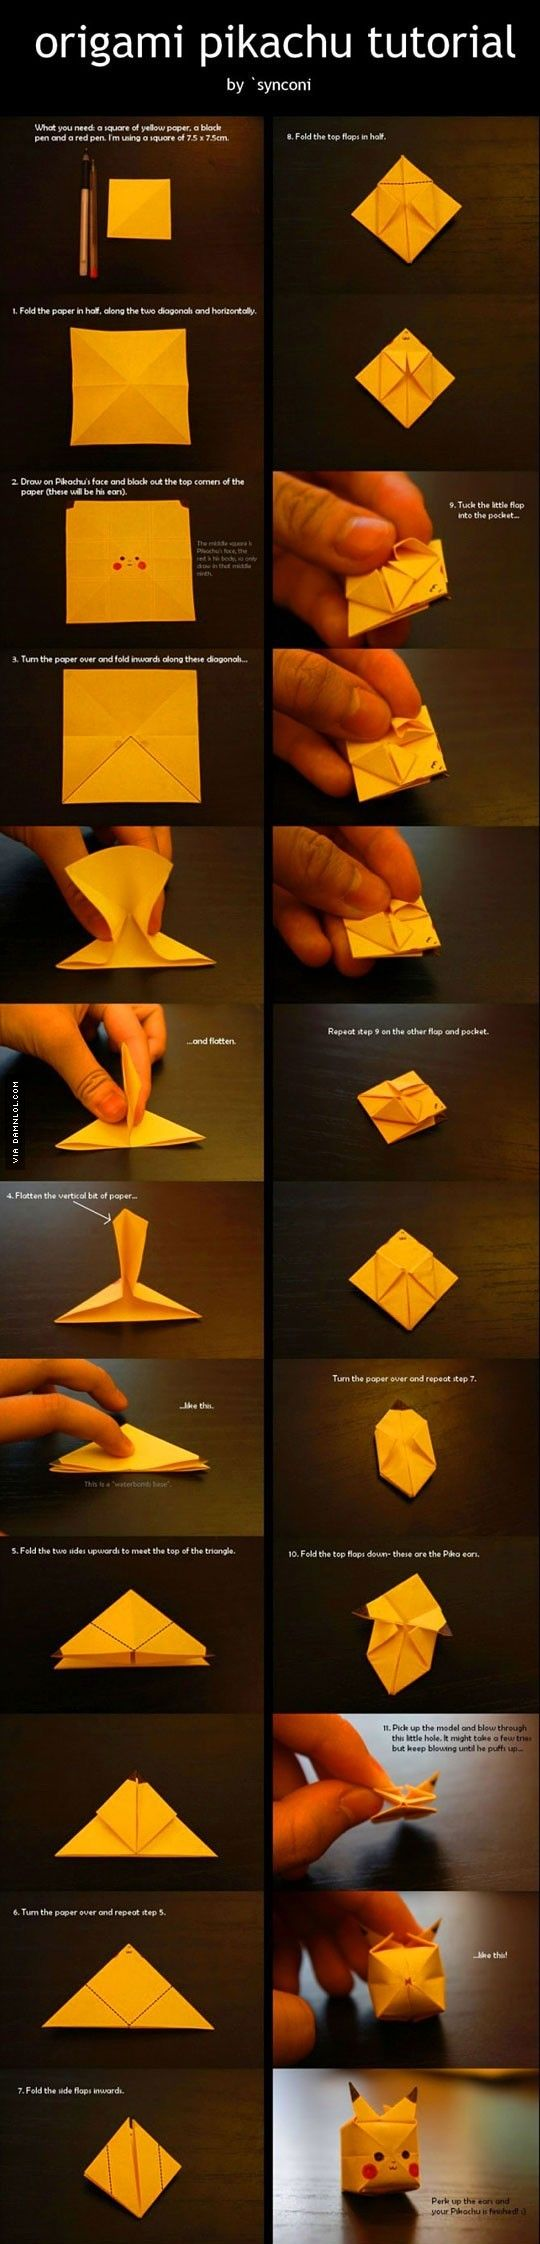 Origami Pikachu Tutorial - The Best Funny Pictures